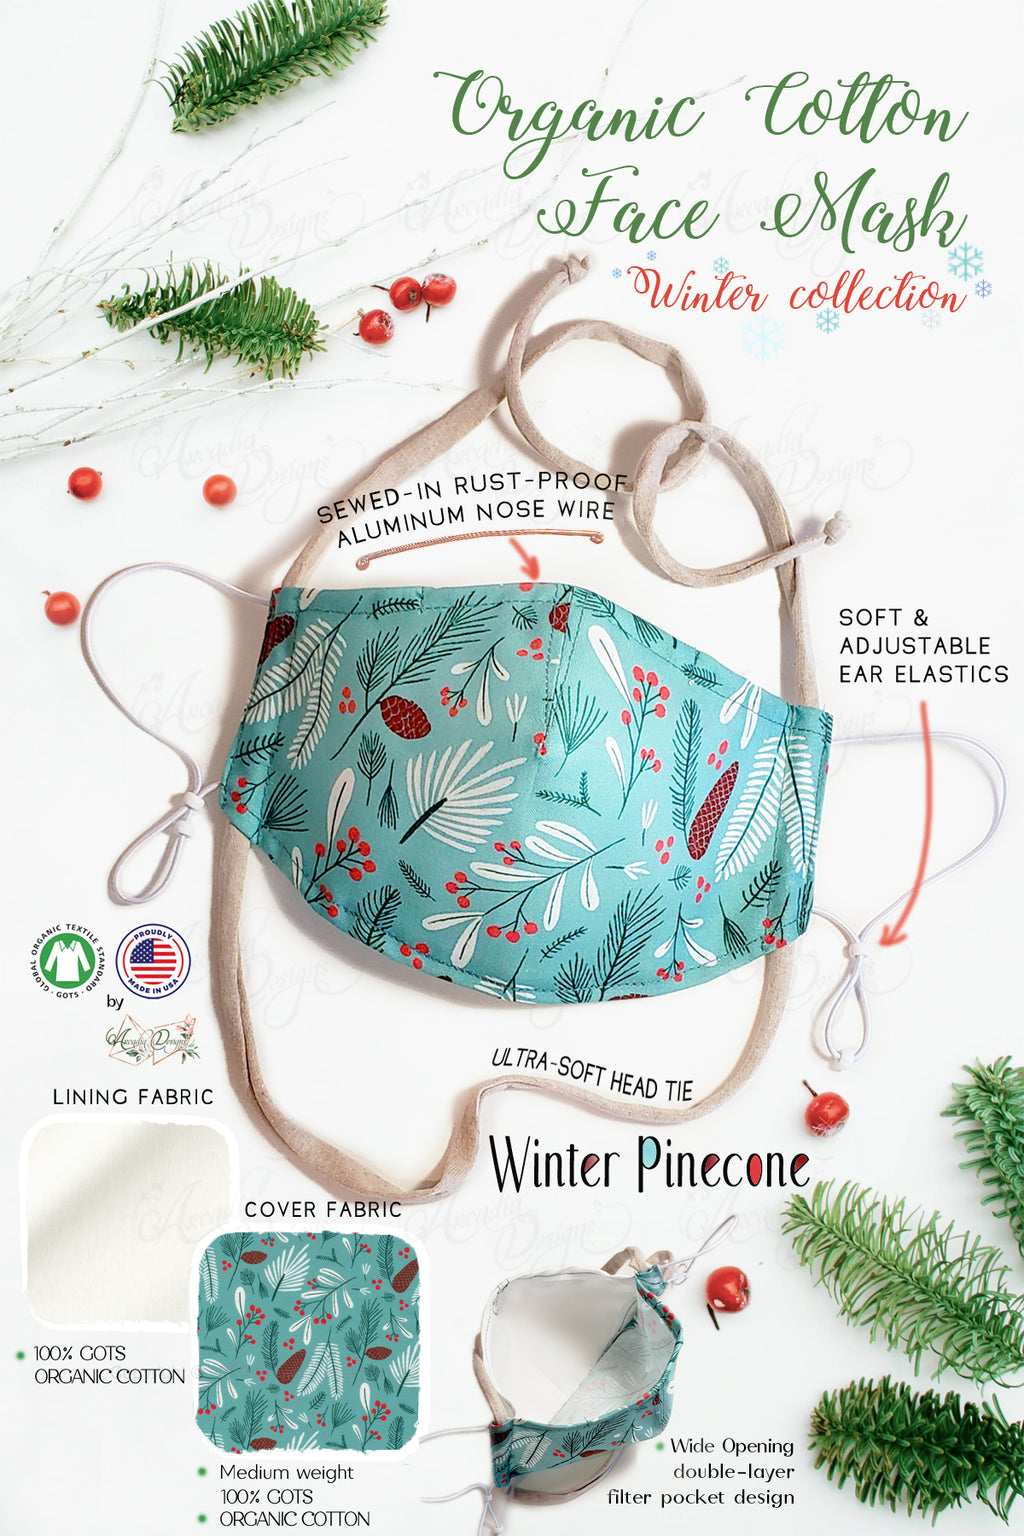 pinecone teal winter holiday christmas theme GOTS certified Organic Cotton cloth face mask with nose wire head tie by Arcadia Designs LLC handmade  made in USA